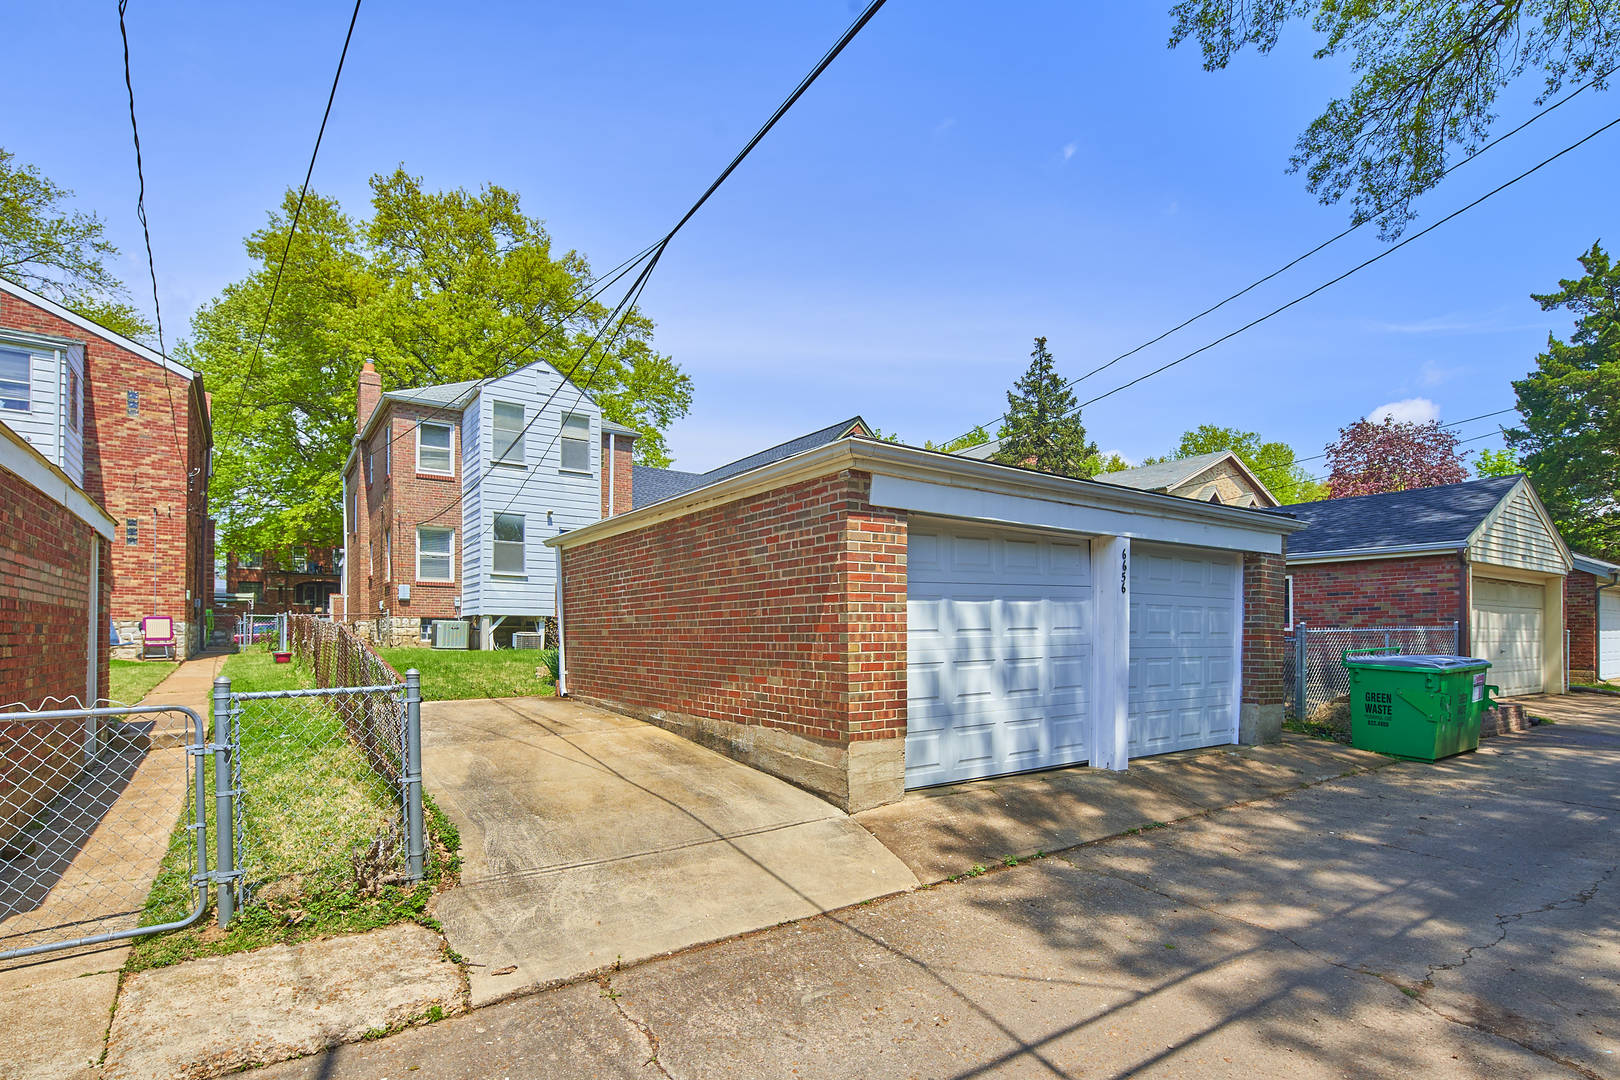 6656 Devonshire Ave Saint Louis, MO 63109